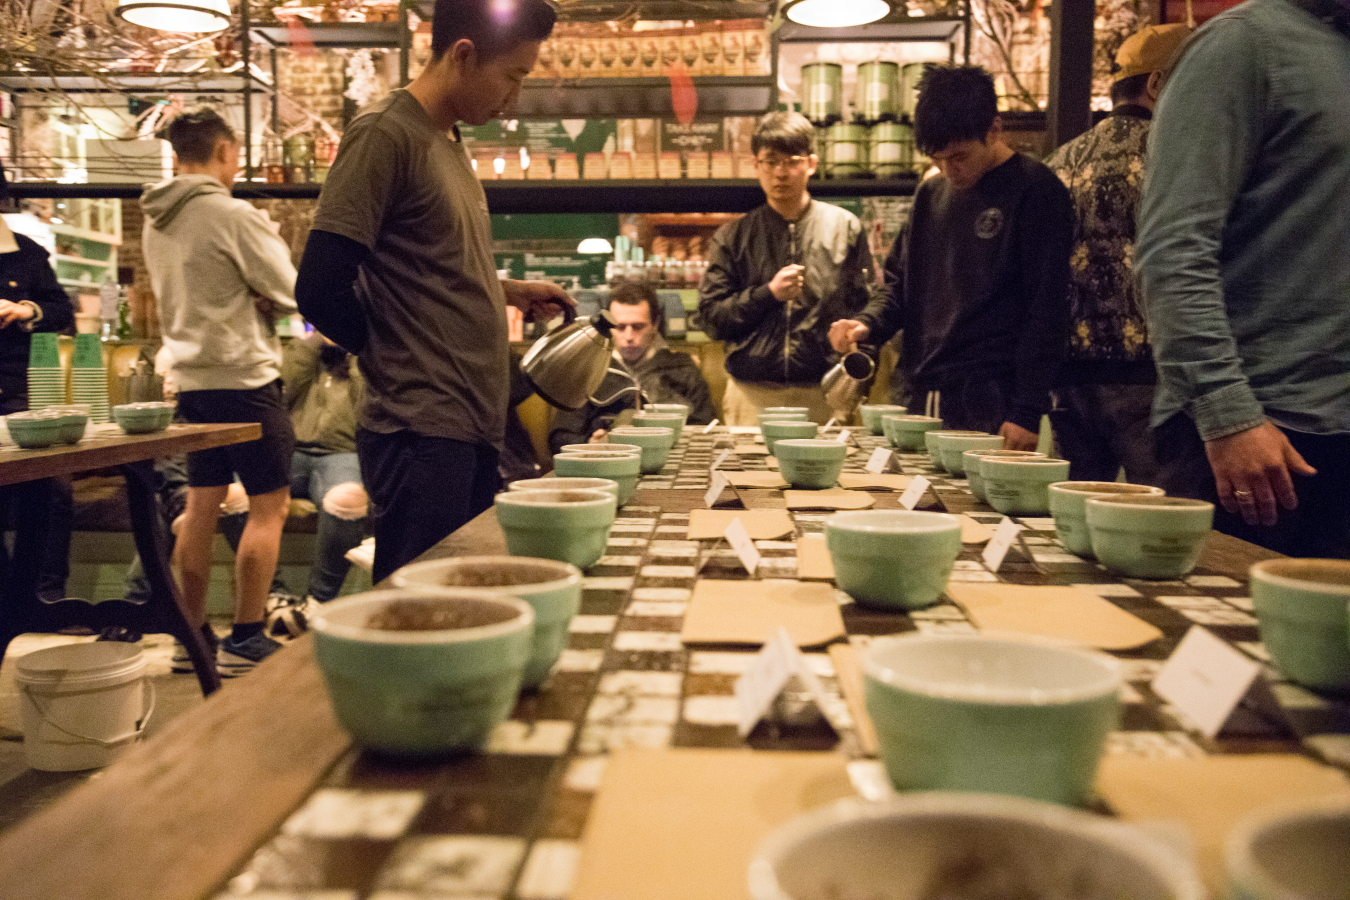 grounds cupping29byo.JPG